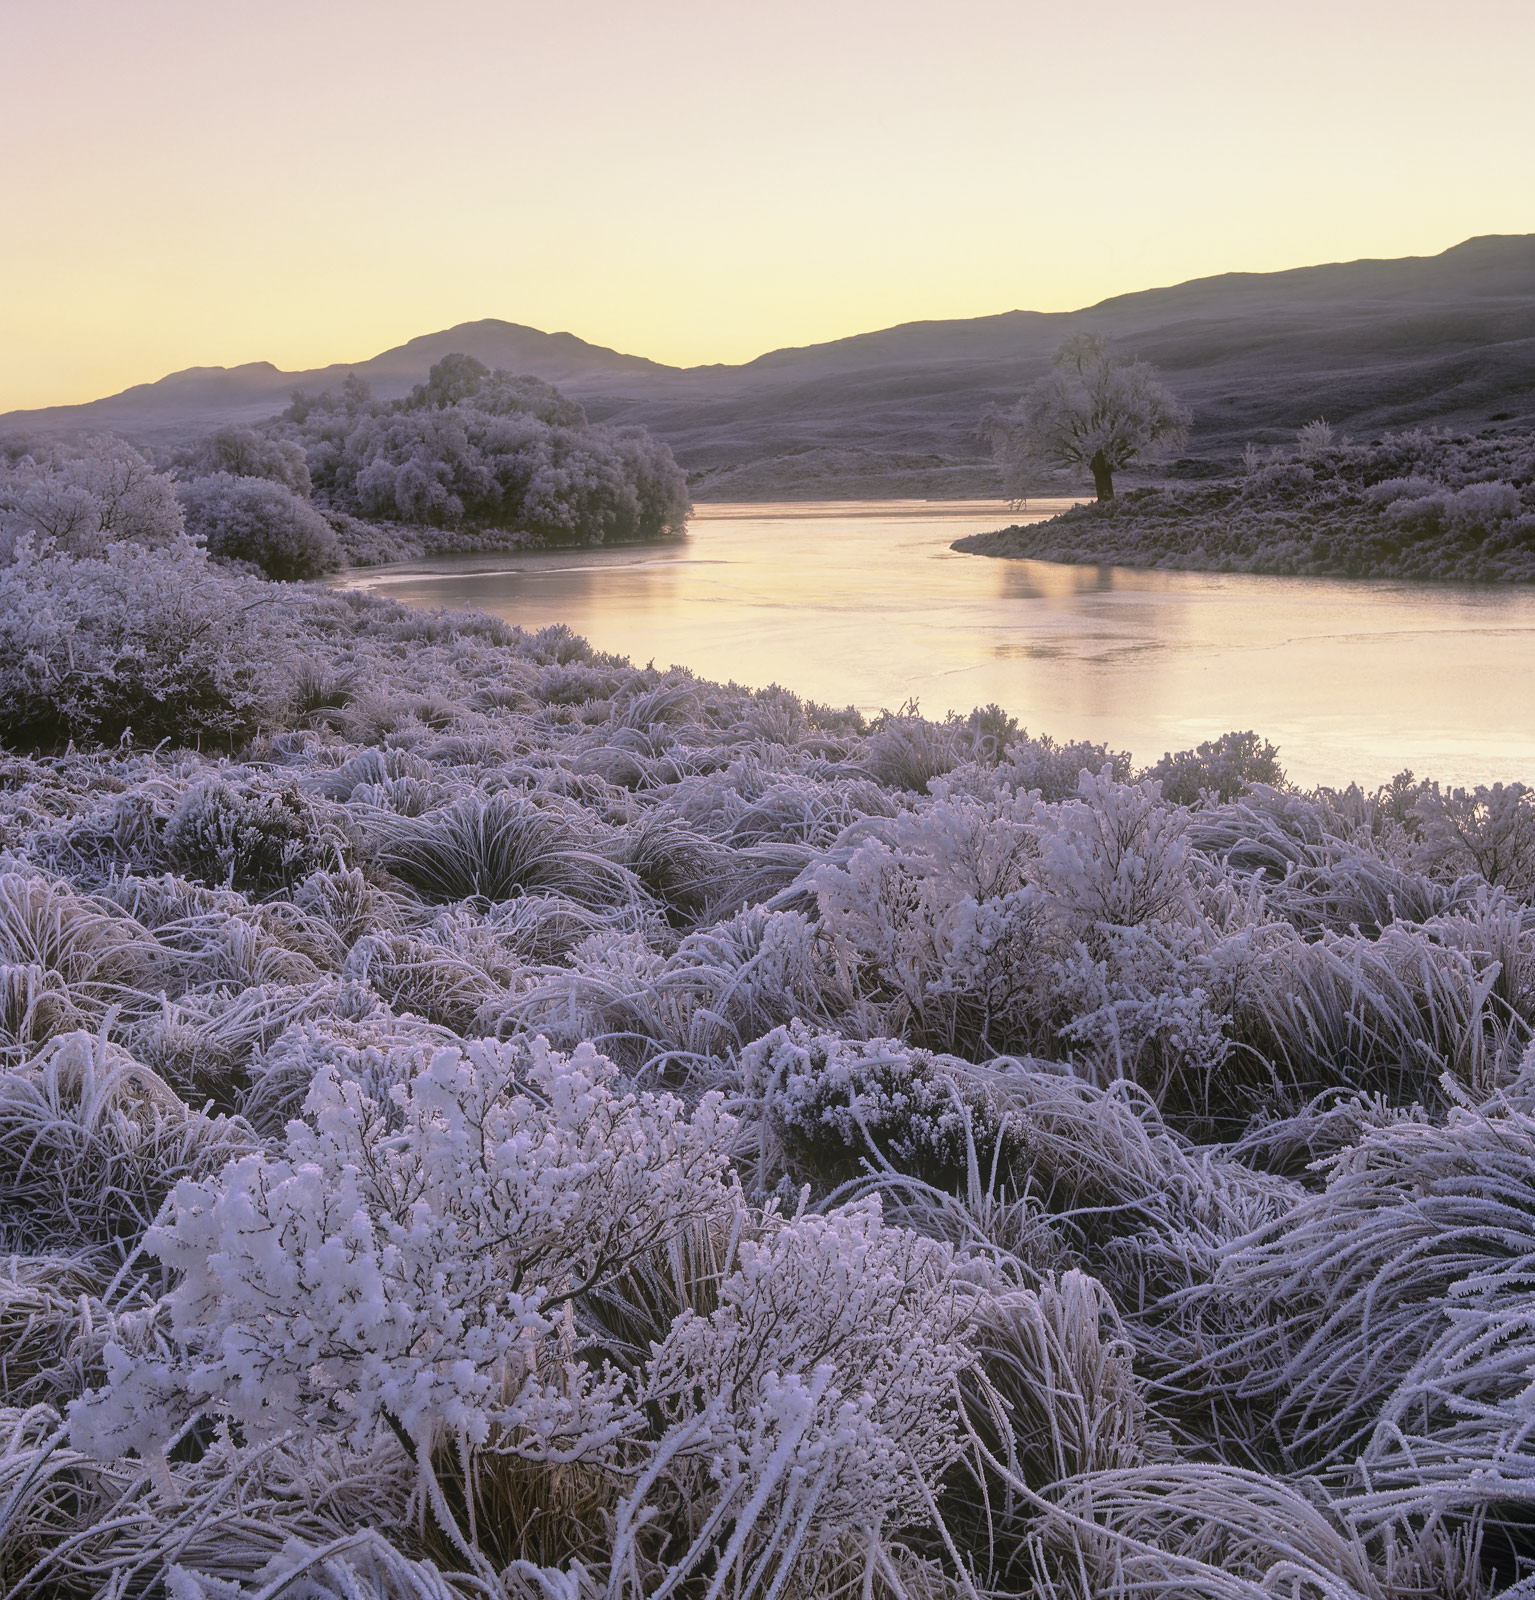 Such a beautiful heavy hoar frost the like of which I had never seen before. I arrived at Loch Achanalt before sunrise...